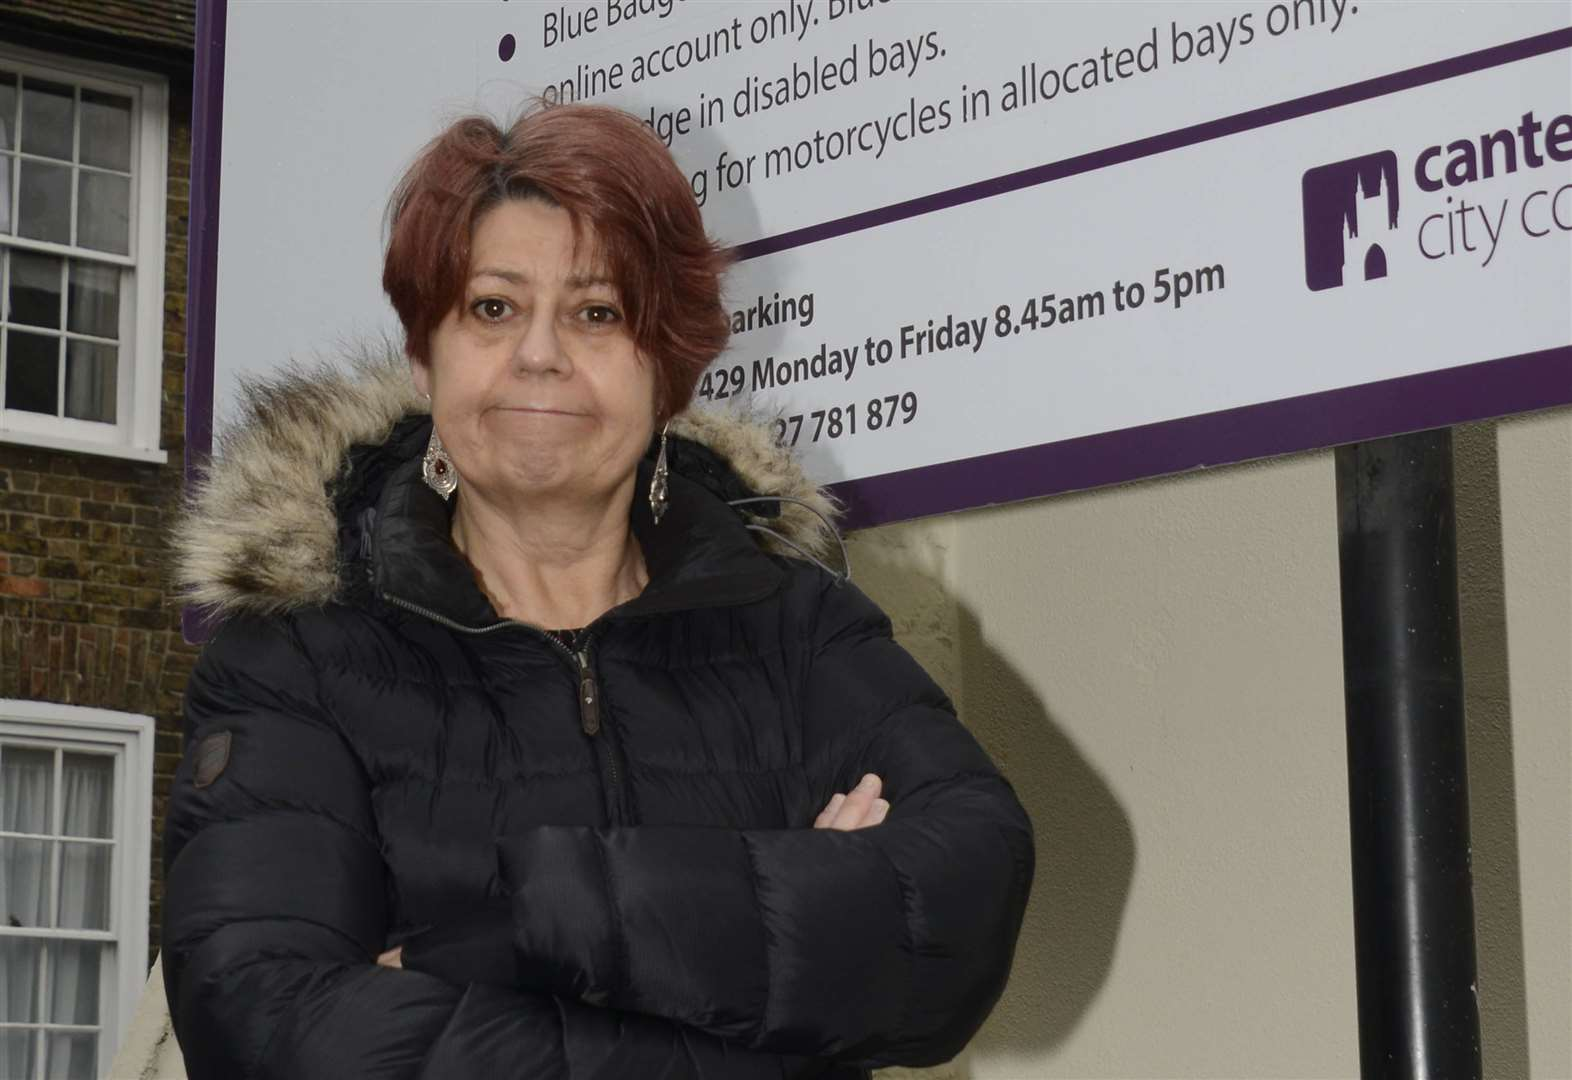 Blood donor's fury at 'disgraceful' parking ticket